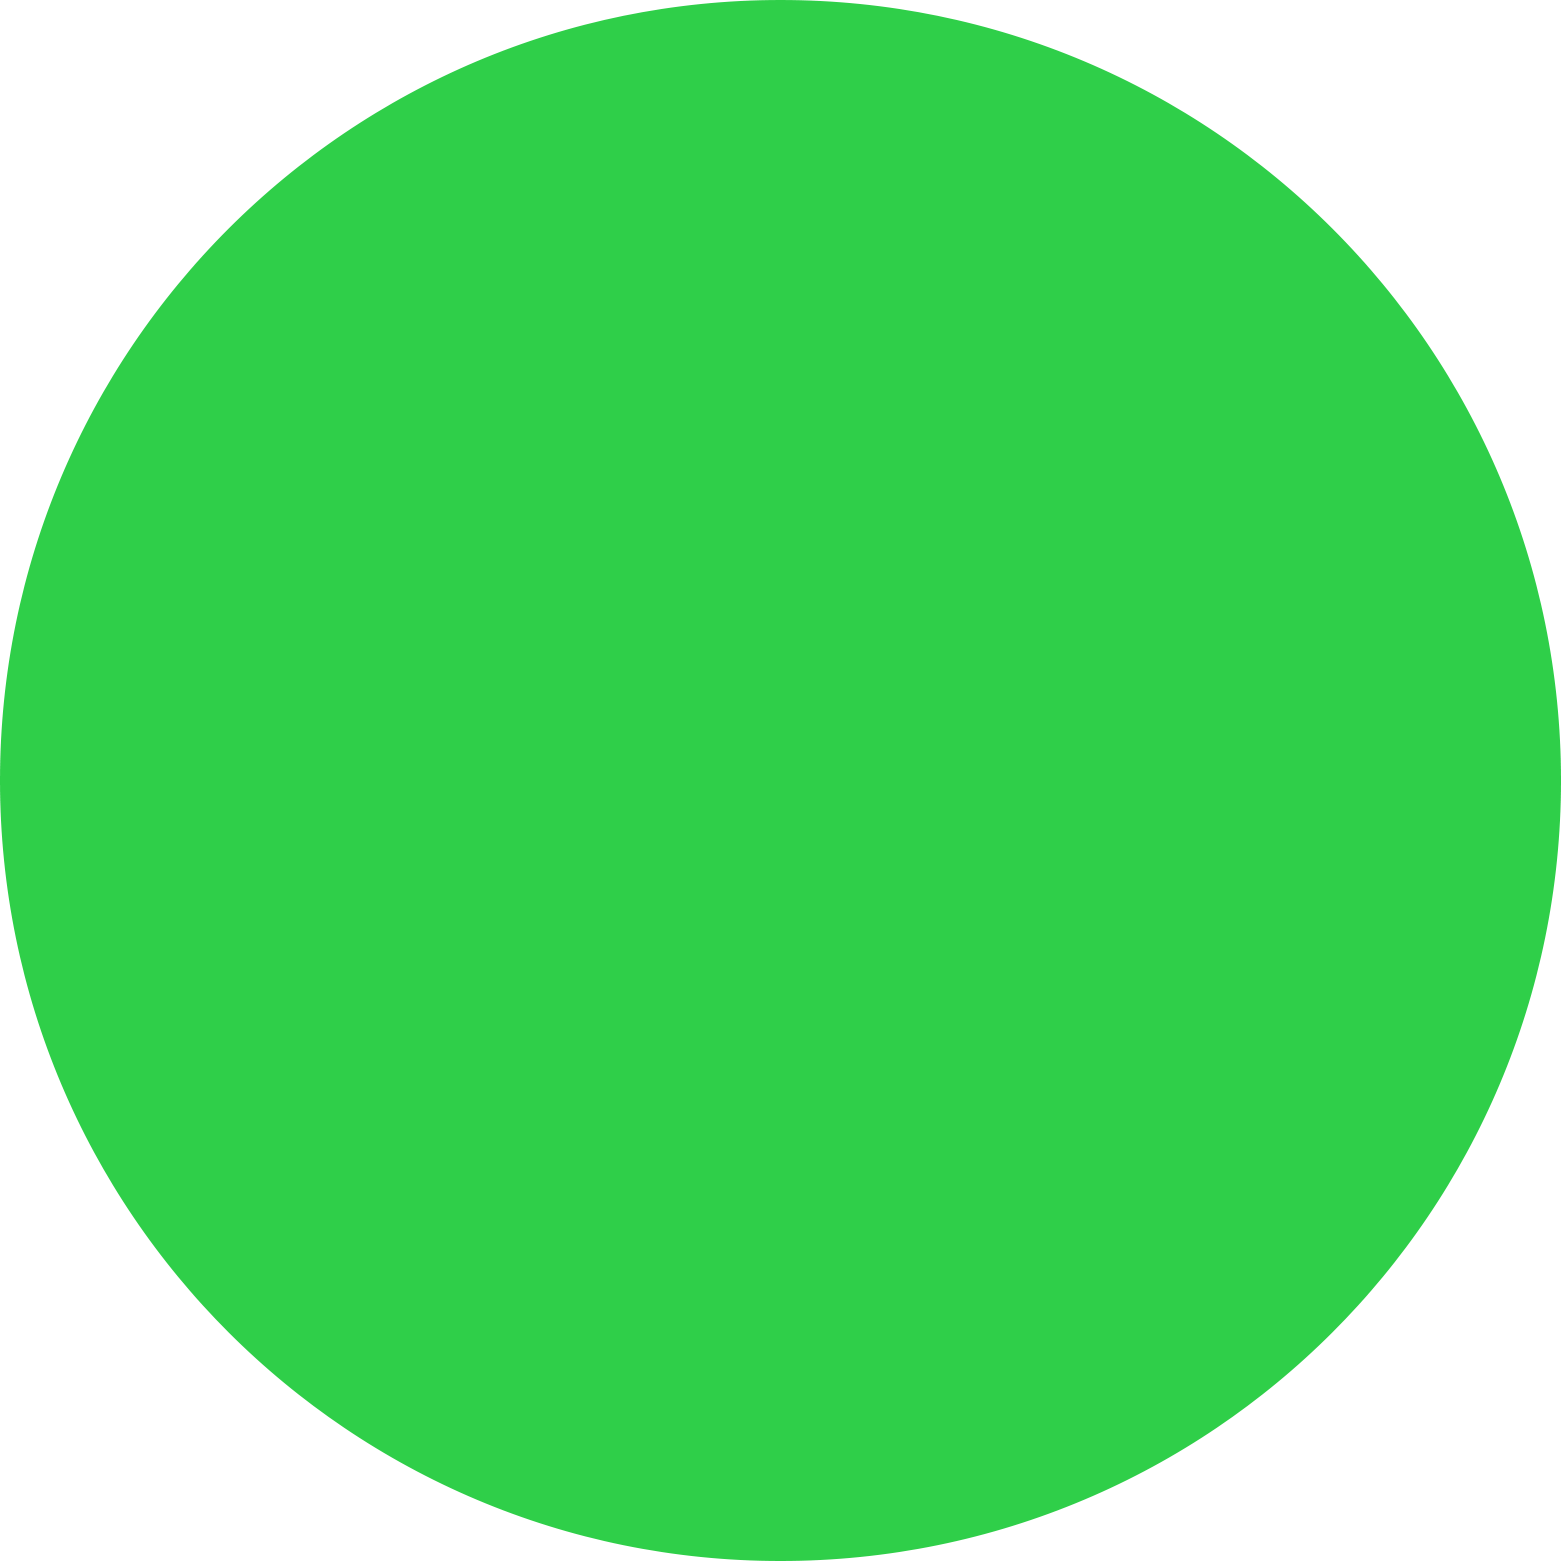 green-1.png